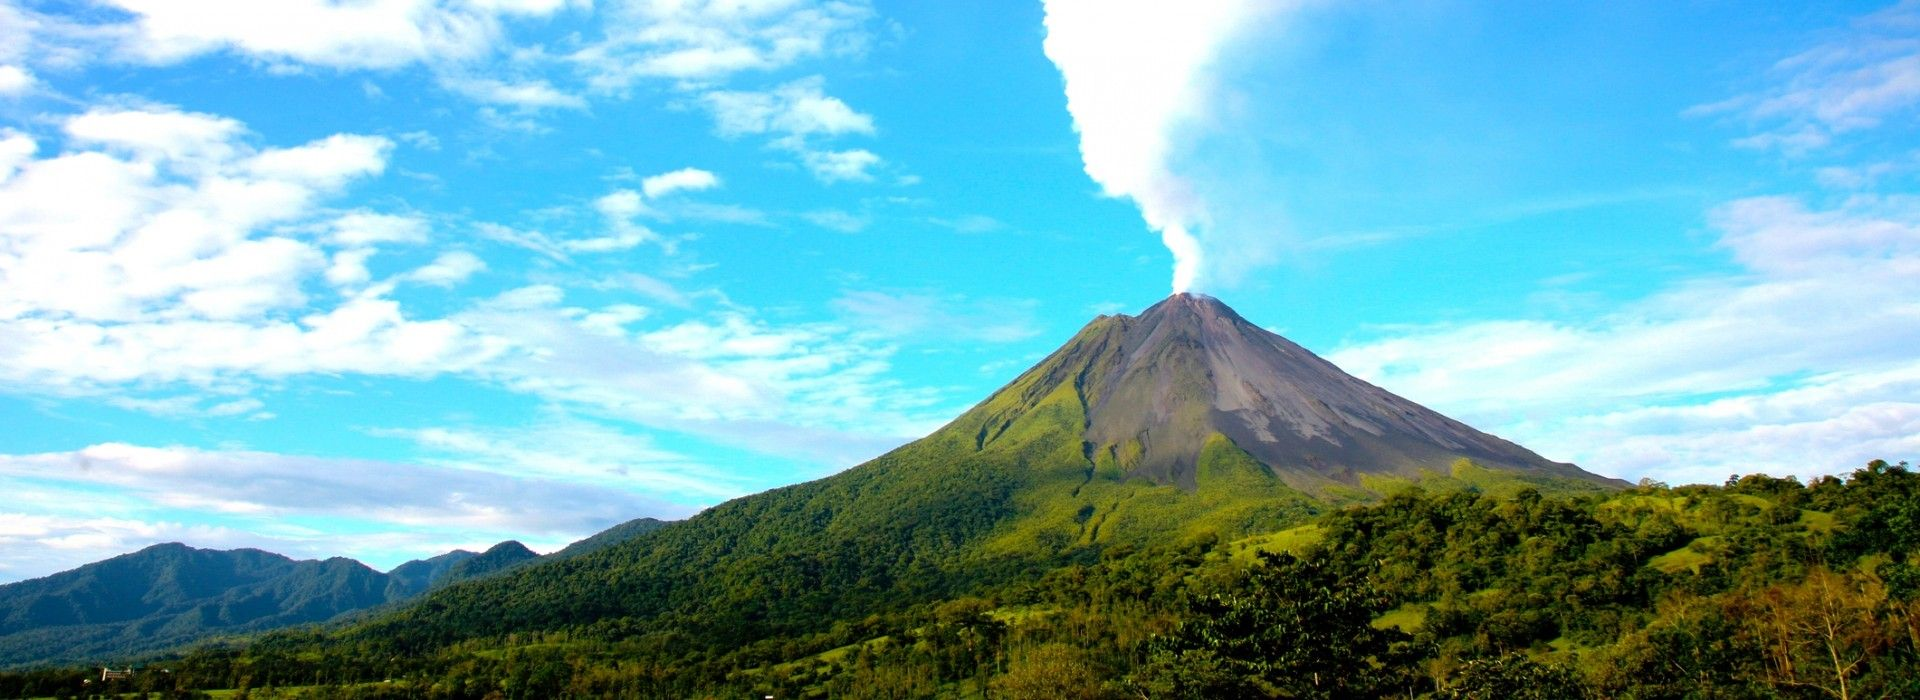 Rafting Tours in Arenal Volcano